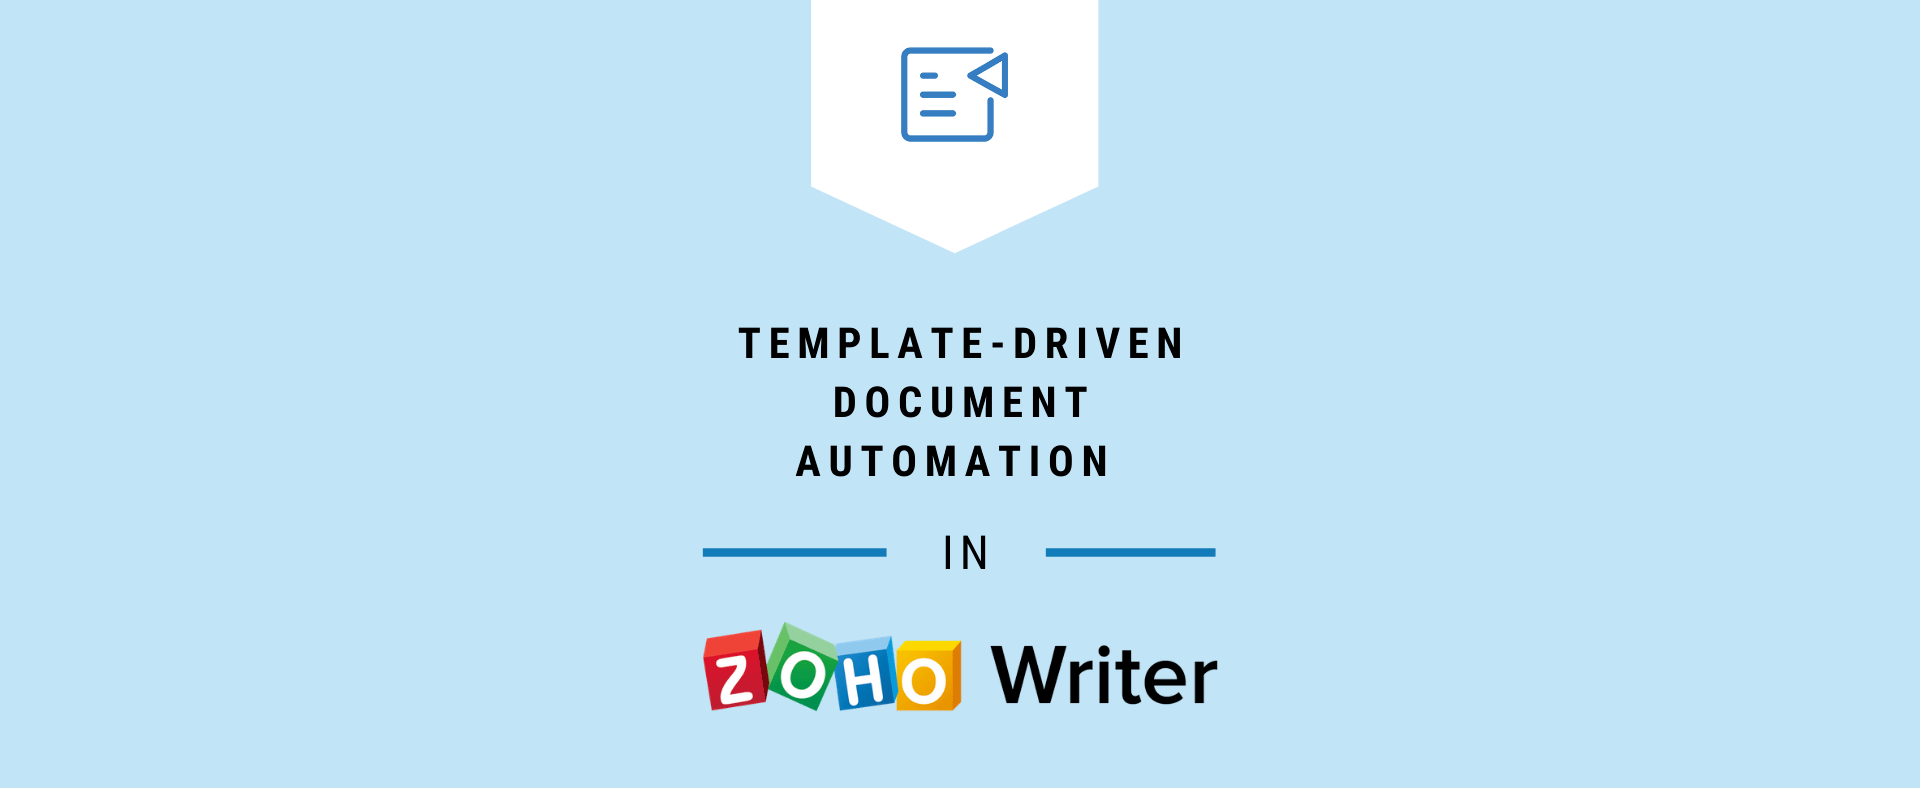 Template-Driven Document Automation in Zoho Writer